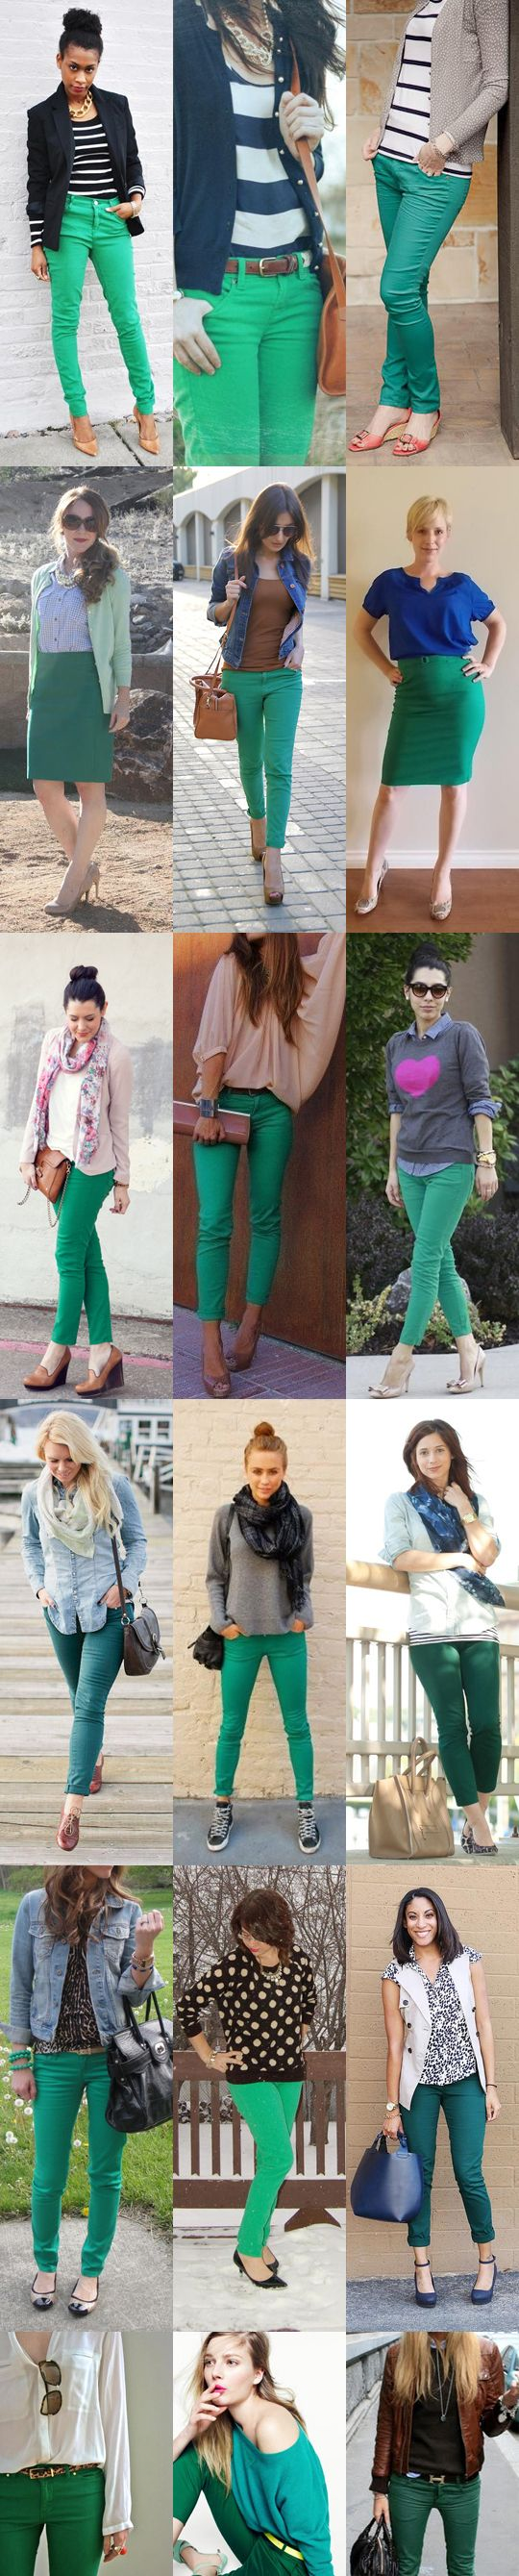 I don't feel so bad about my green pants now.    How to Wear Green Jeans